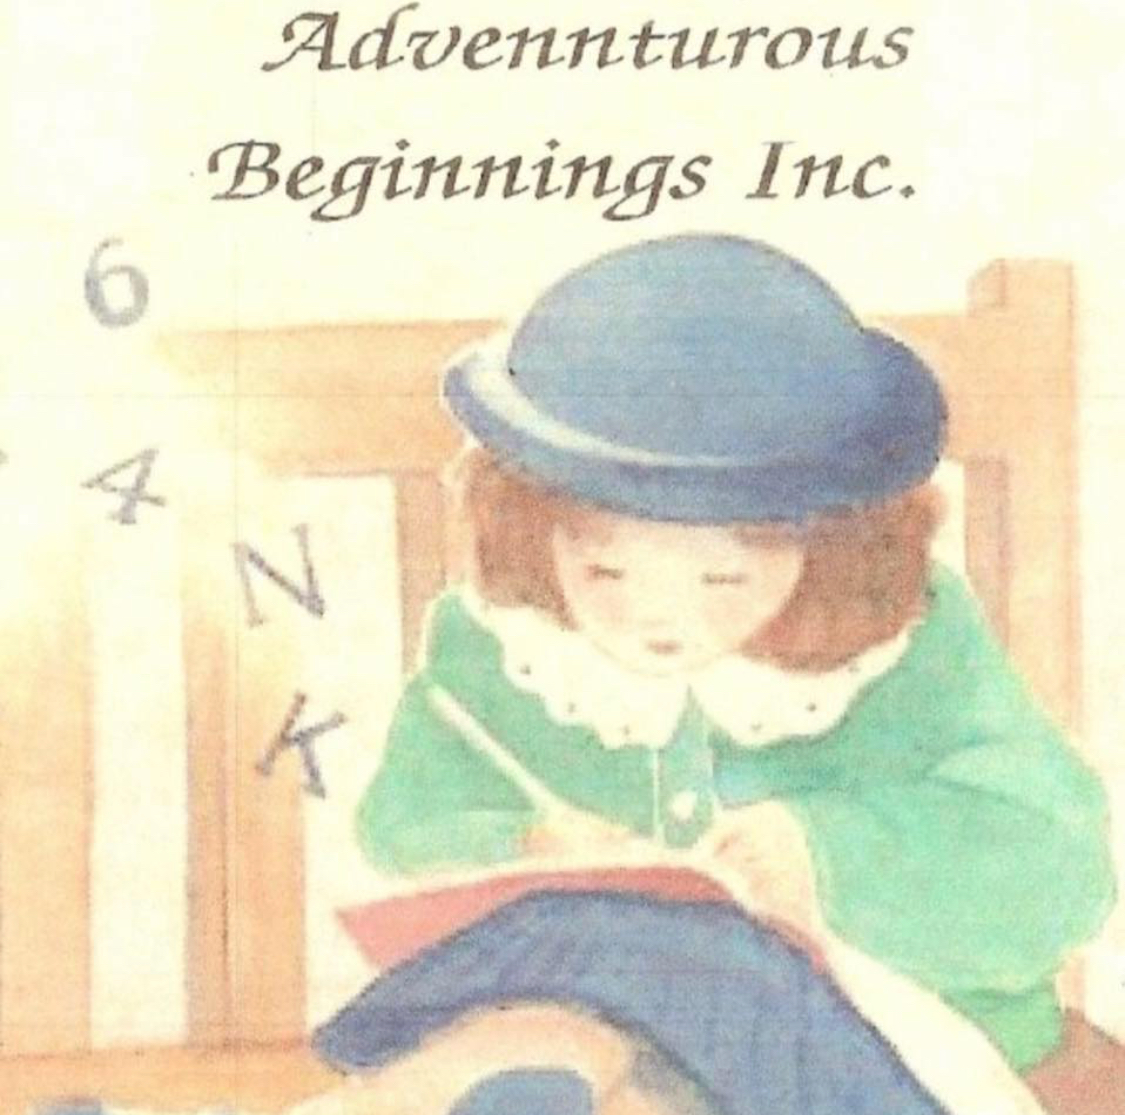 ADVENTUROUS BEGINNINGS, INC.